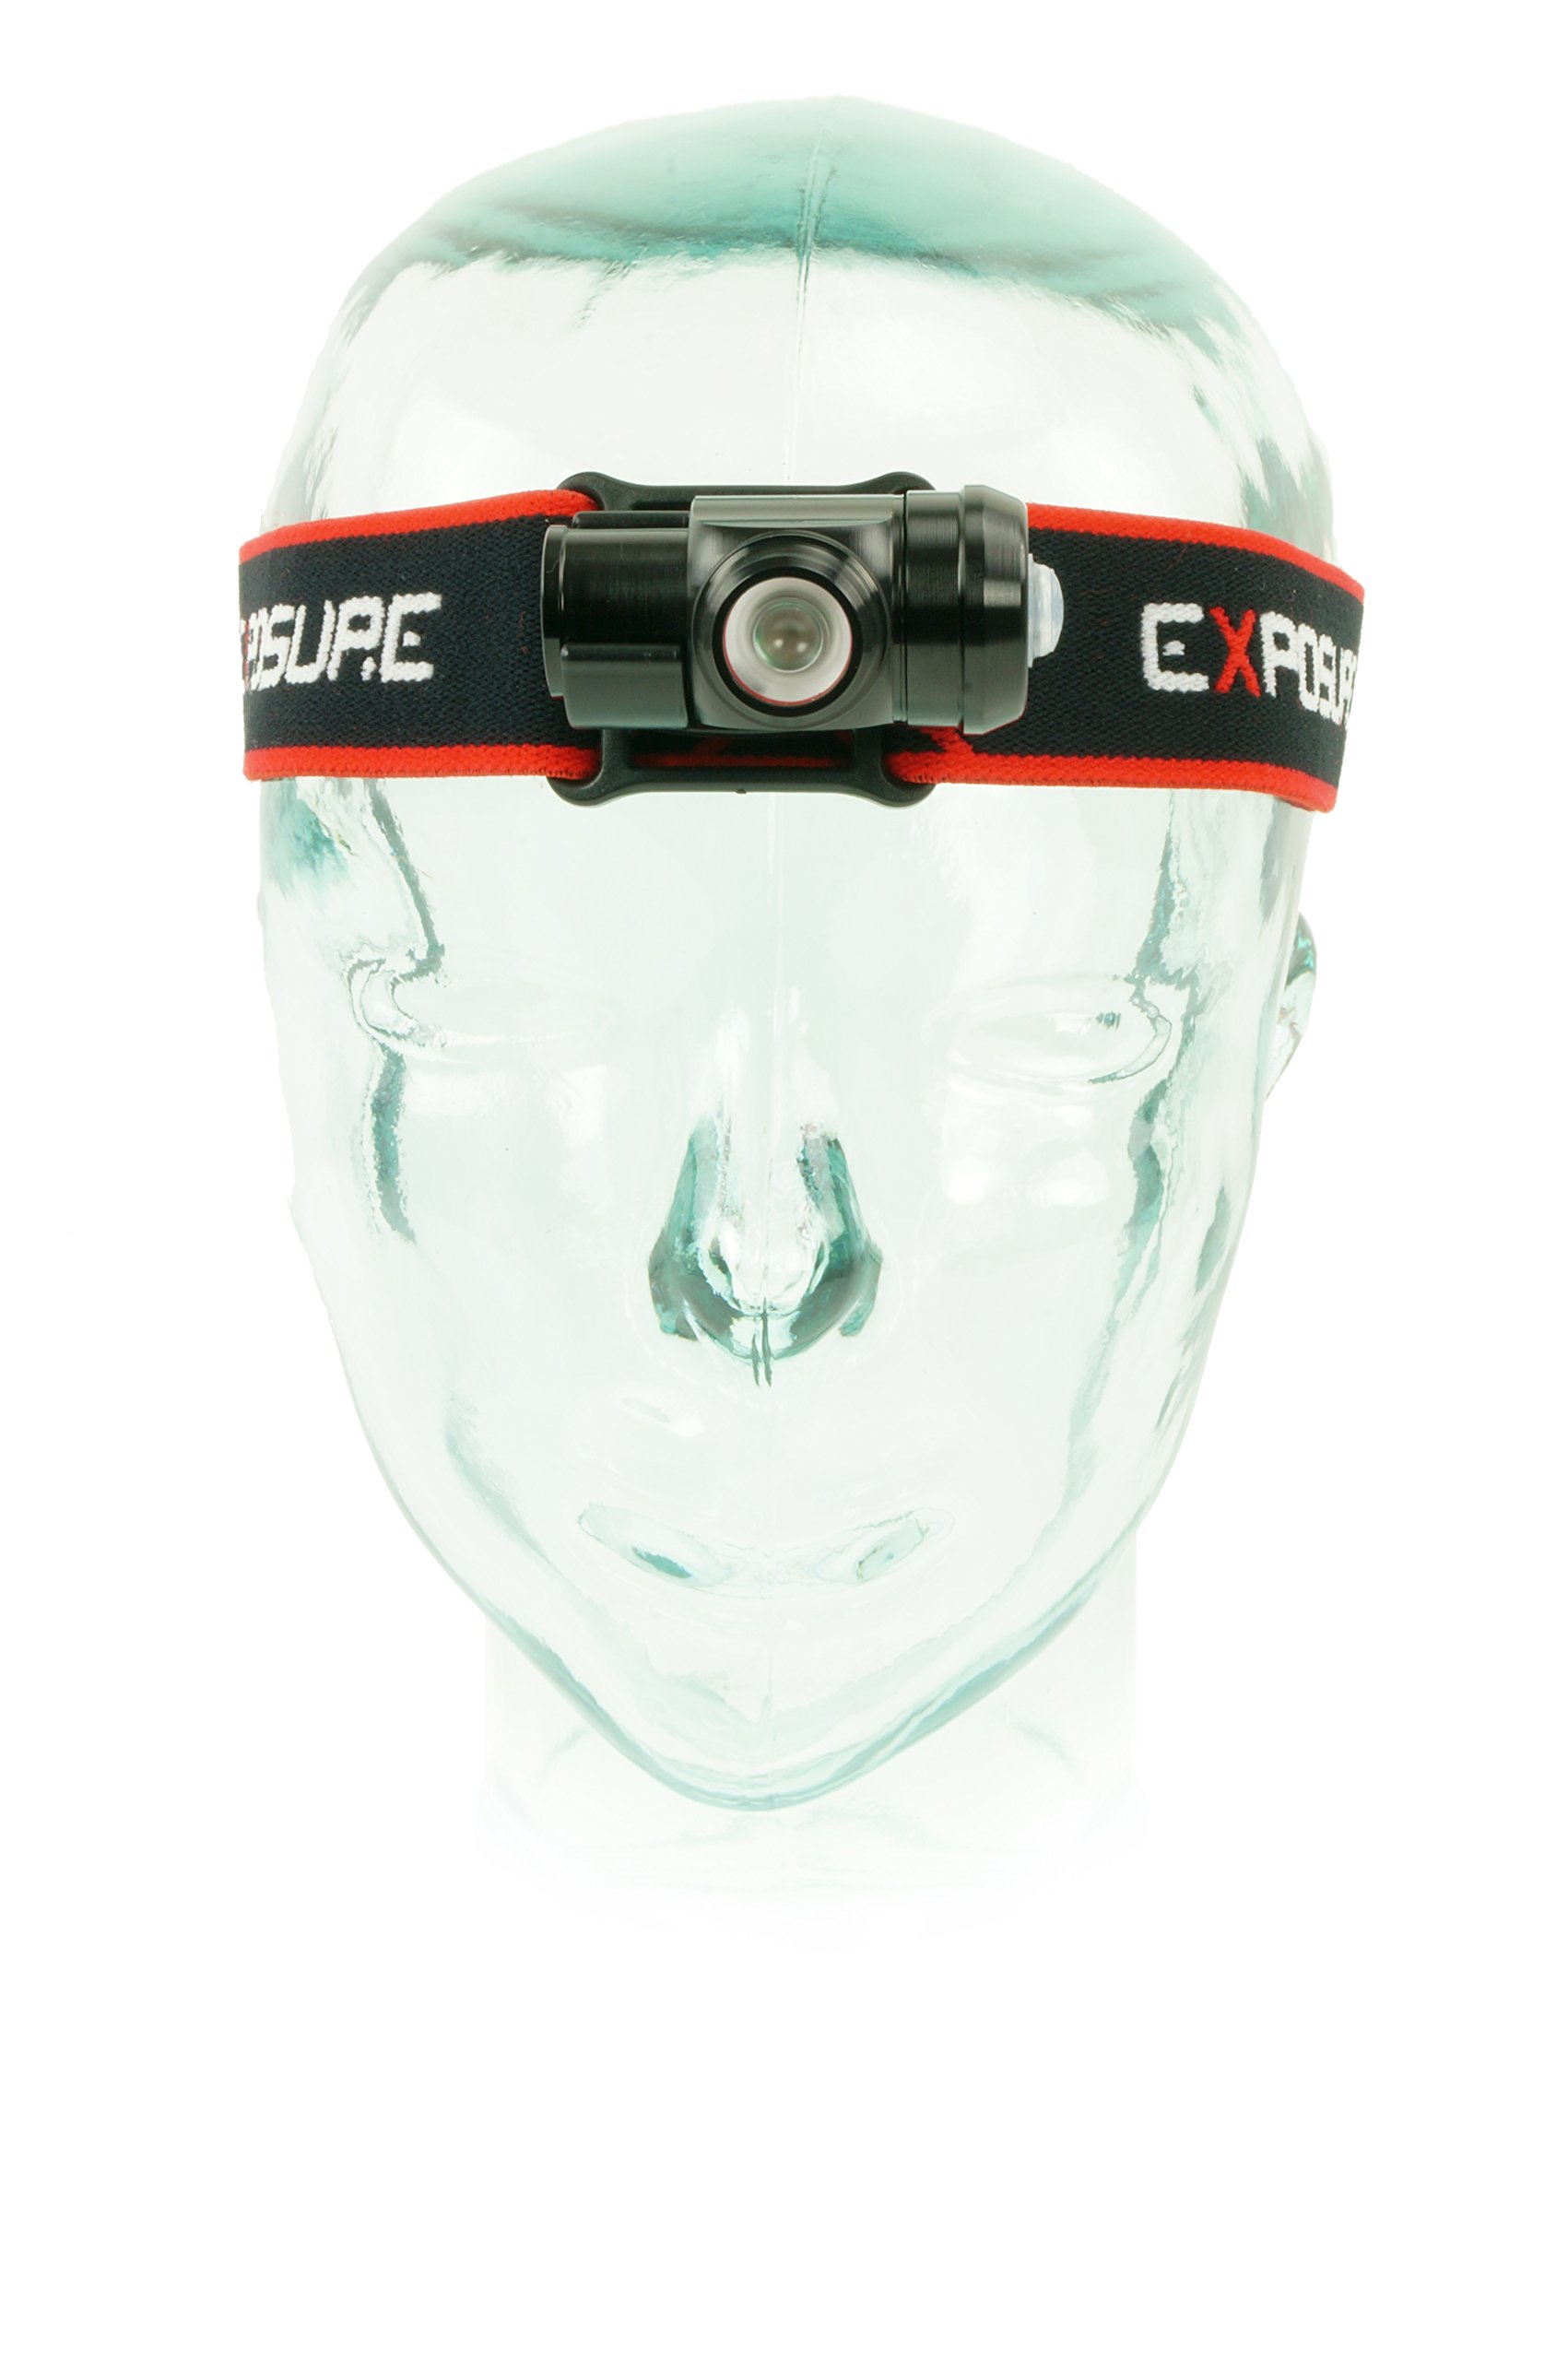 Exposure Lights R.A.W. PRO Edition 200 Lumen Red & White waterproof head Torch Made In Great Britain by Exposure Lights (Image #1)